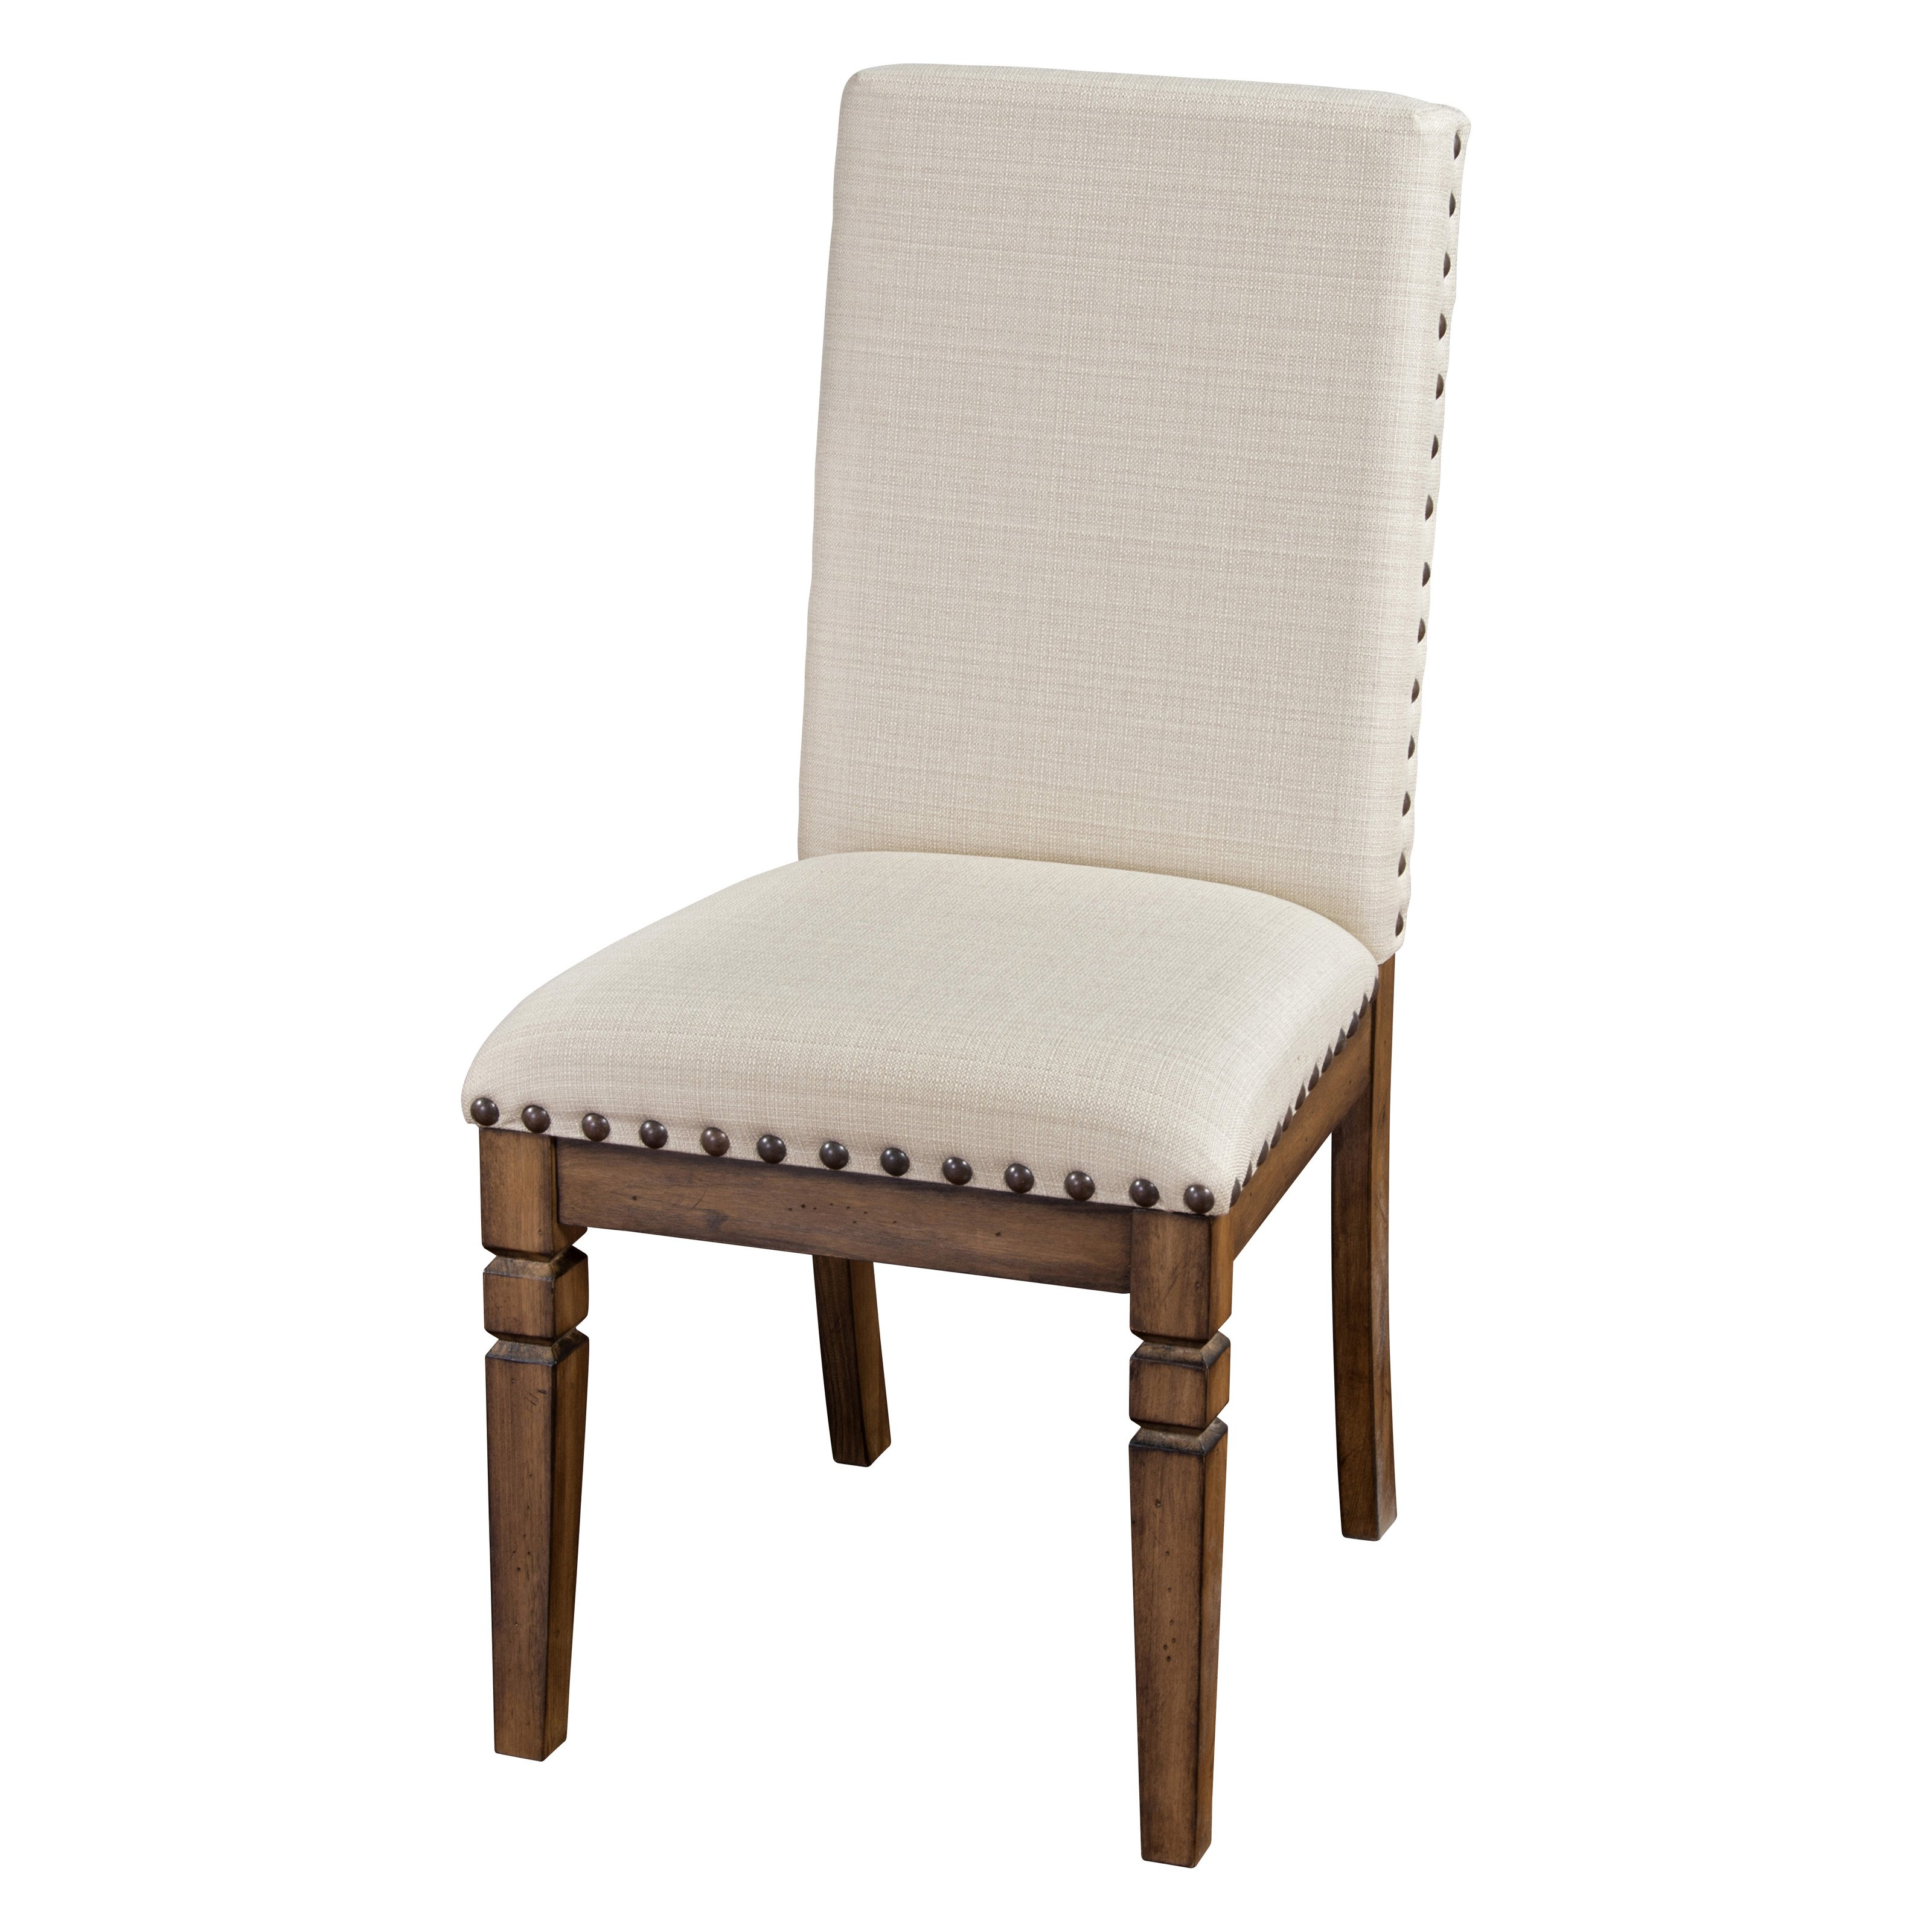 Sunny Designs Cornerstone Upholstered Parson Chair